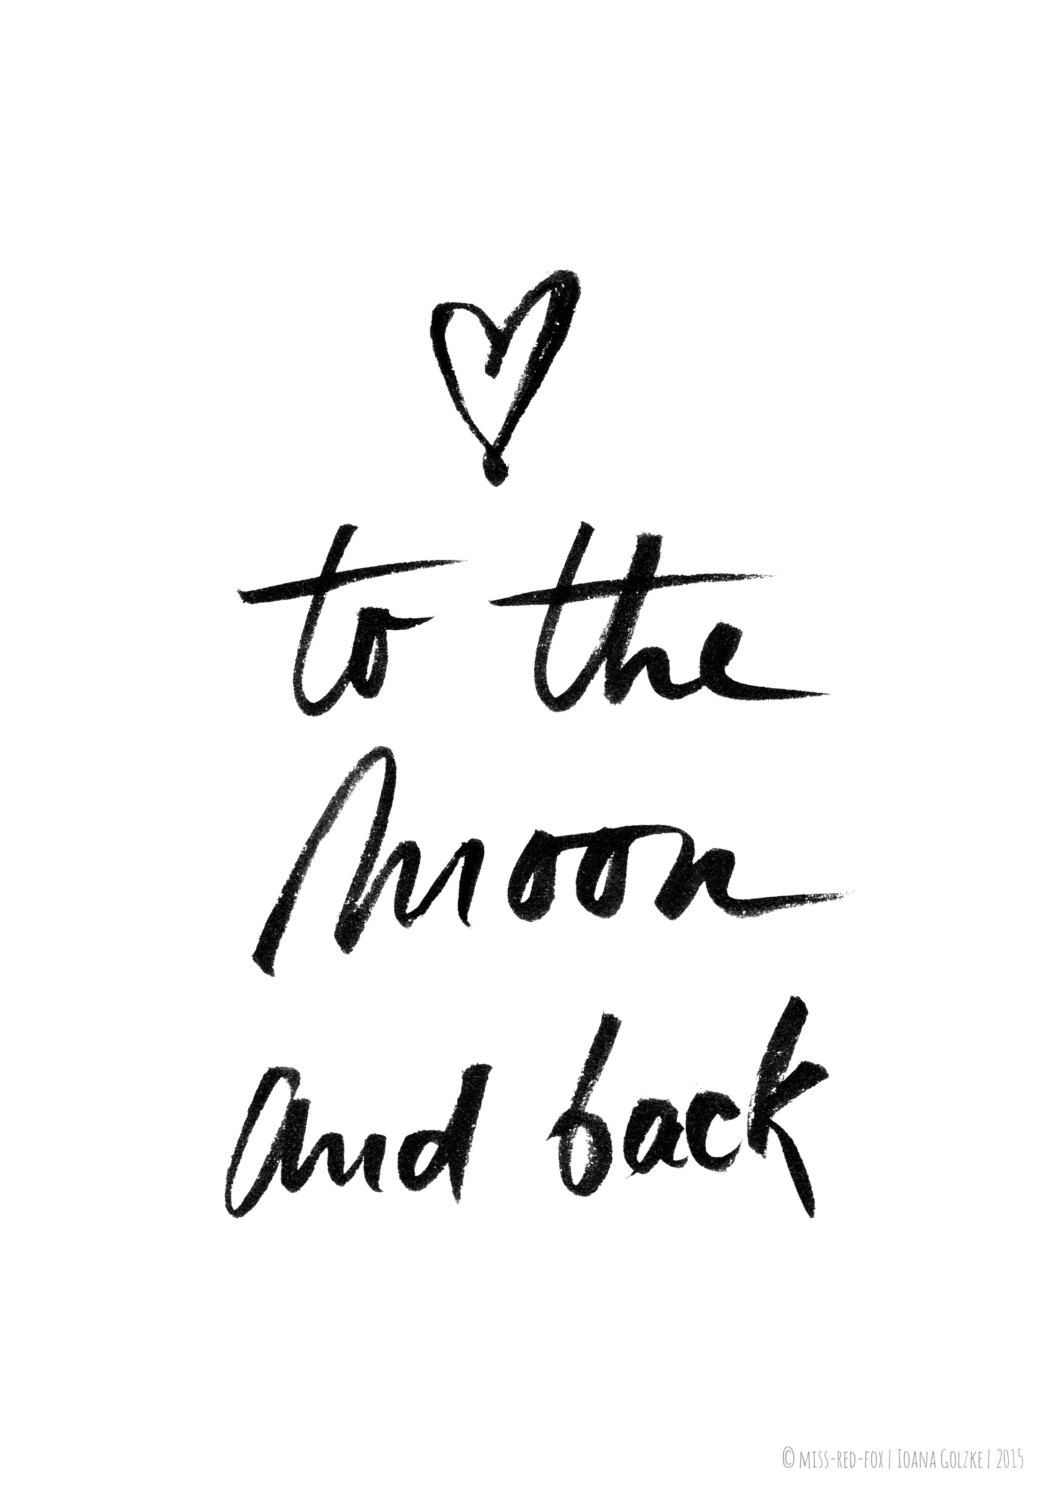 To The Moon And Back Poster Print Black And White Lettering Qupte T Wall Decoration